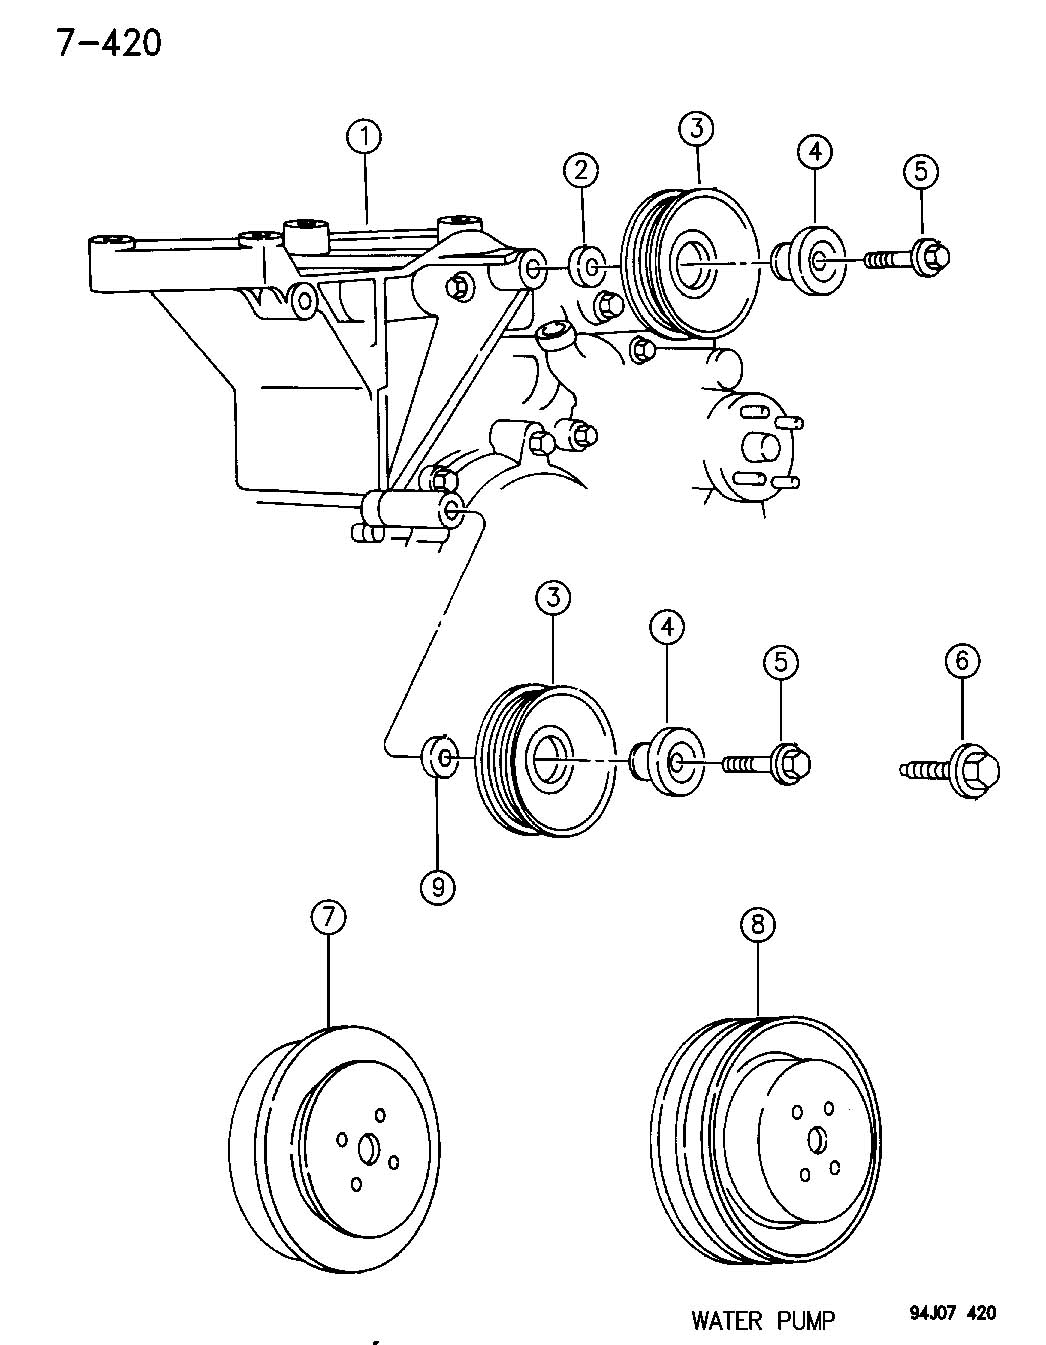 jeep 4.0 engine pulley diagram